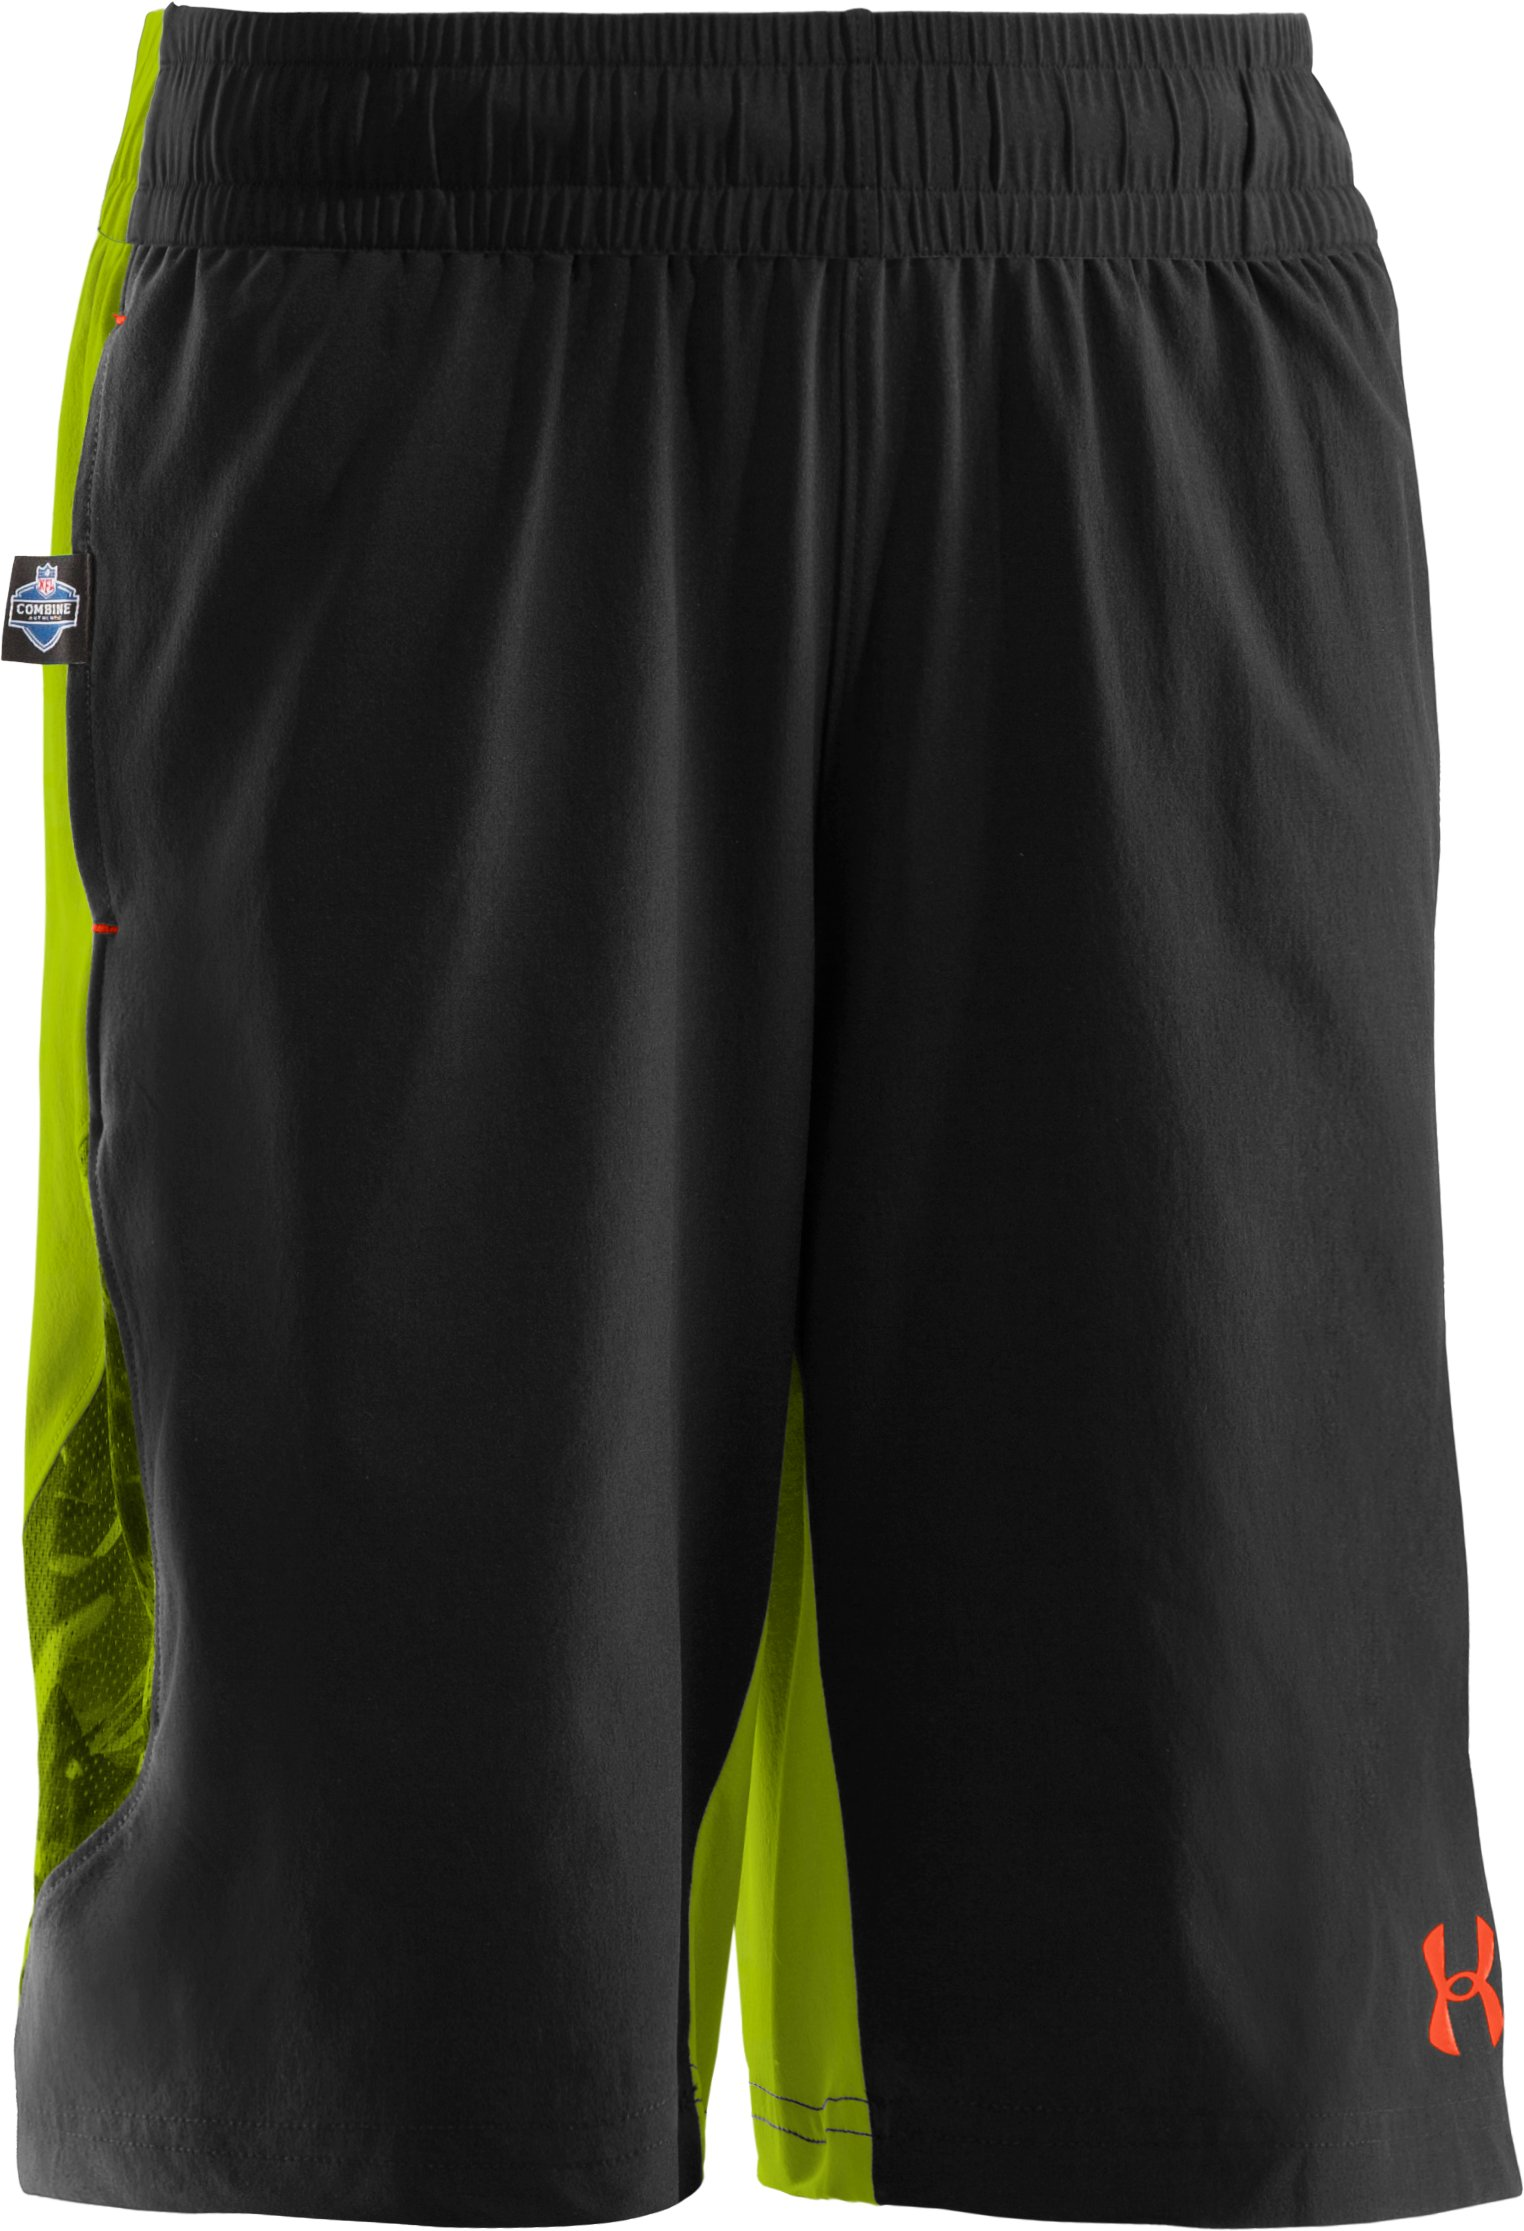 Boys' NFL Combine Authentic Shorts, Black , zoomed image